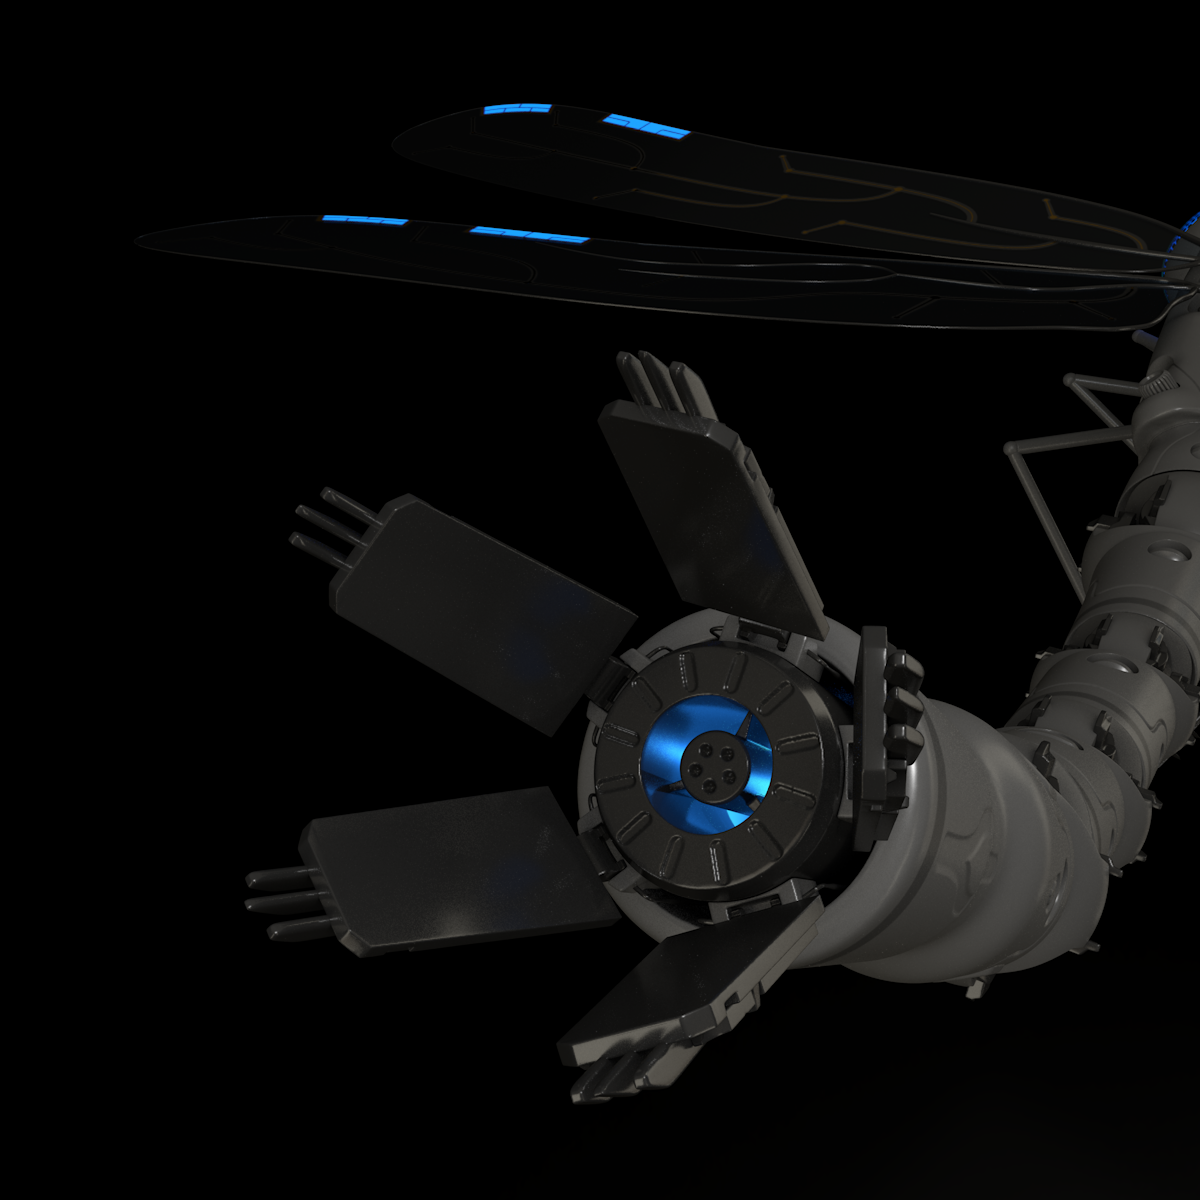 Dragonfly4 based on Intel Core 2 Duo